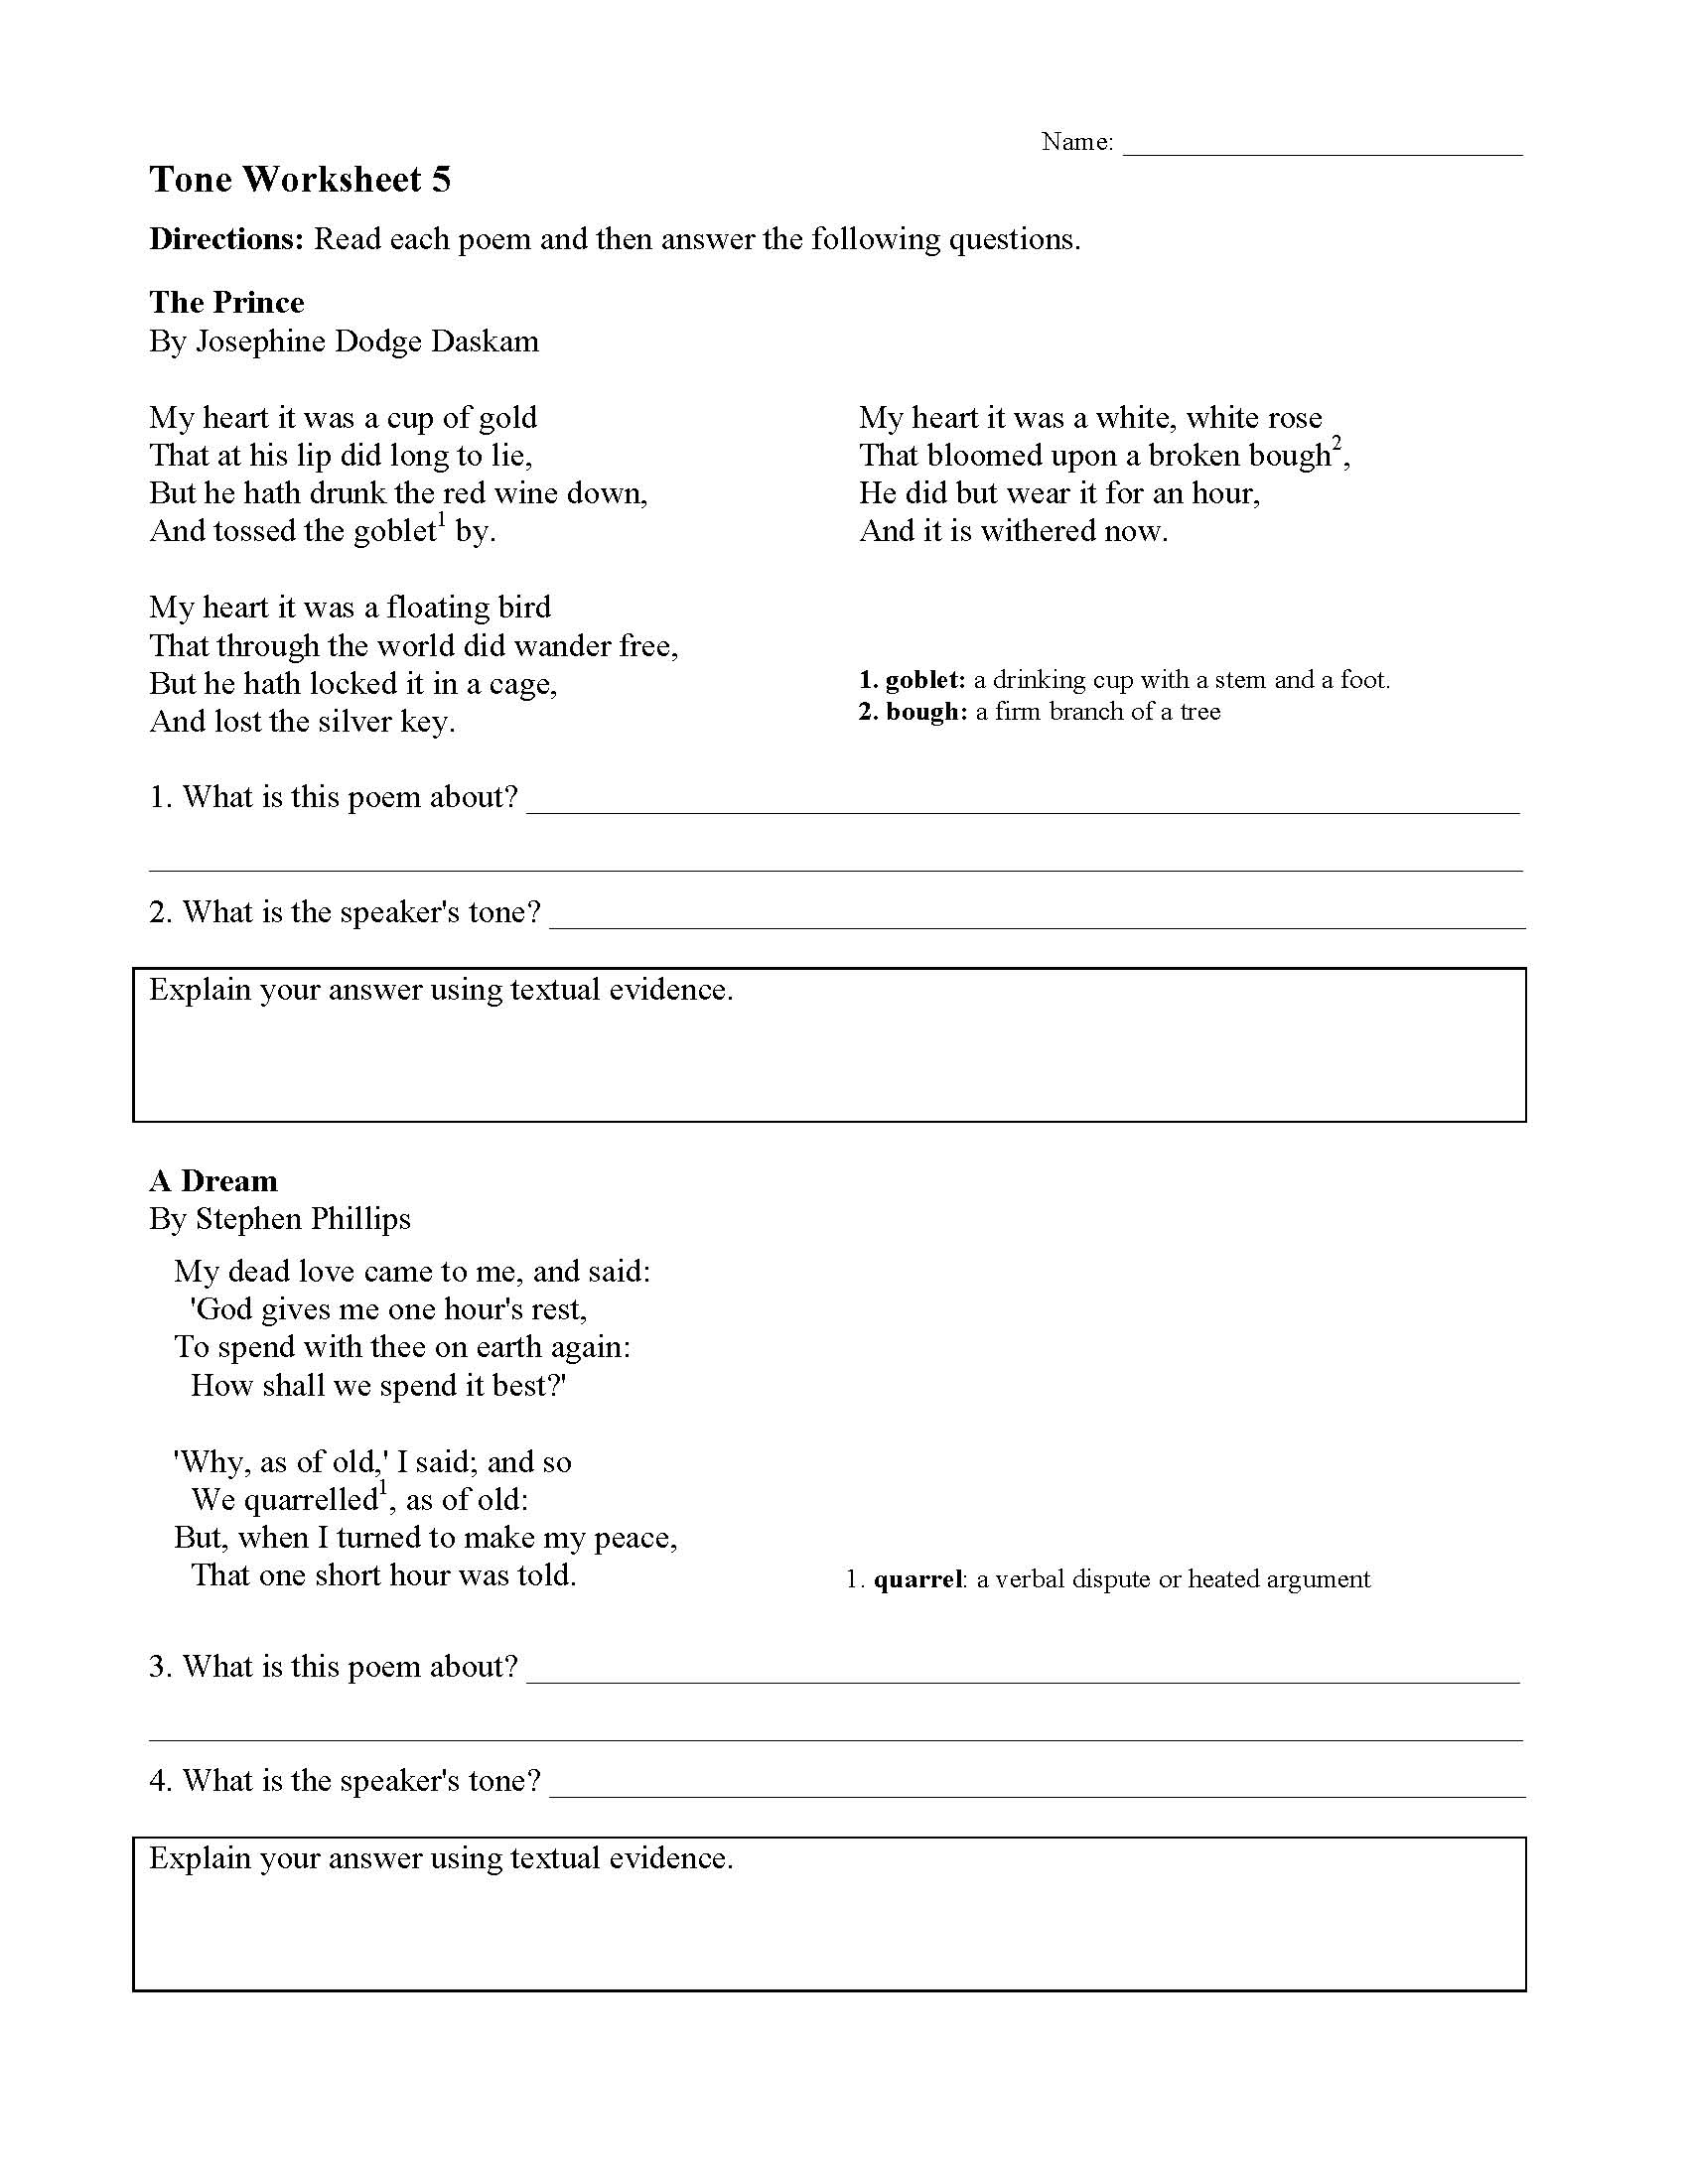 This is a preview image of the Tone Worksheet 5.